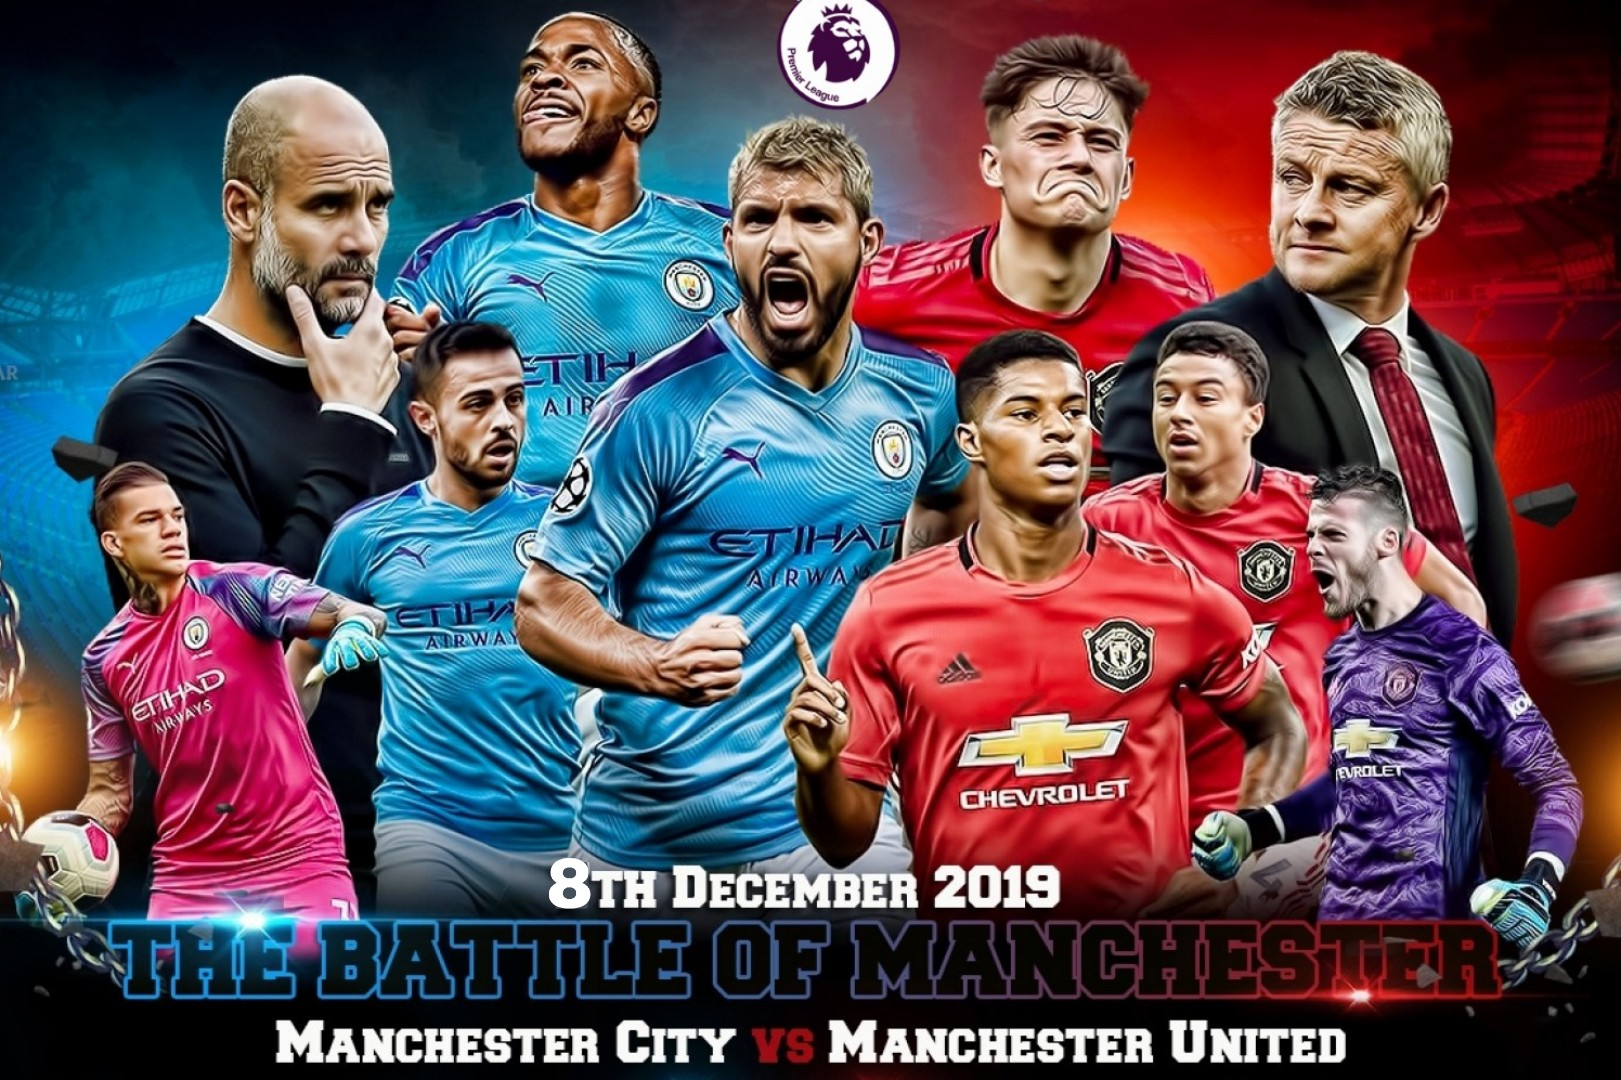 Manchester Derby Oncoming! Can Solskjær take the victory over Mourinho and win Guardiola again?